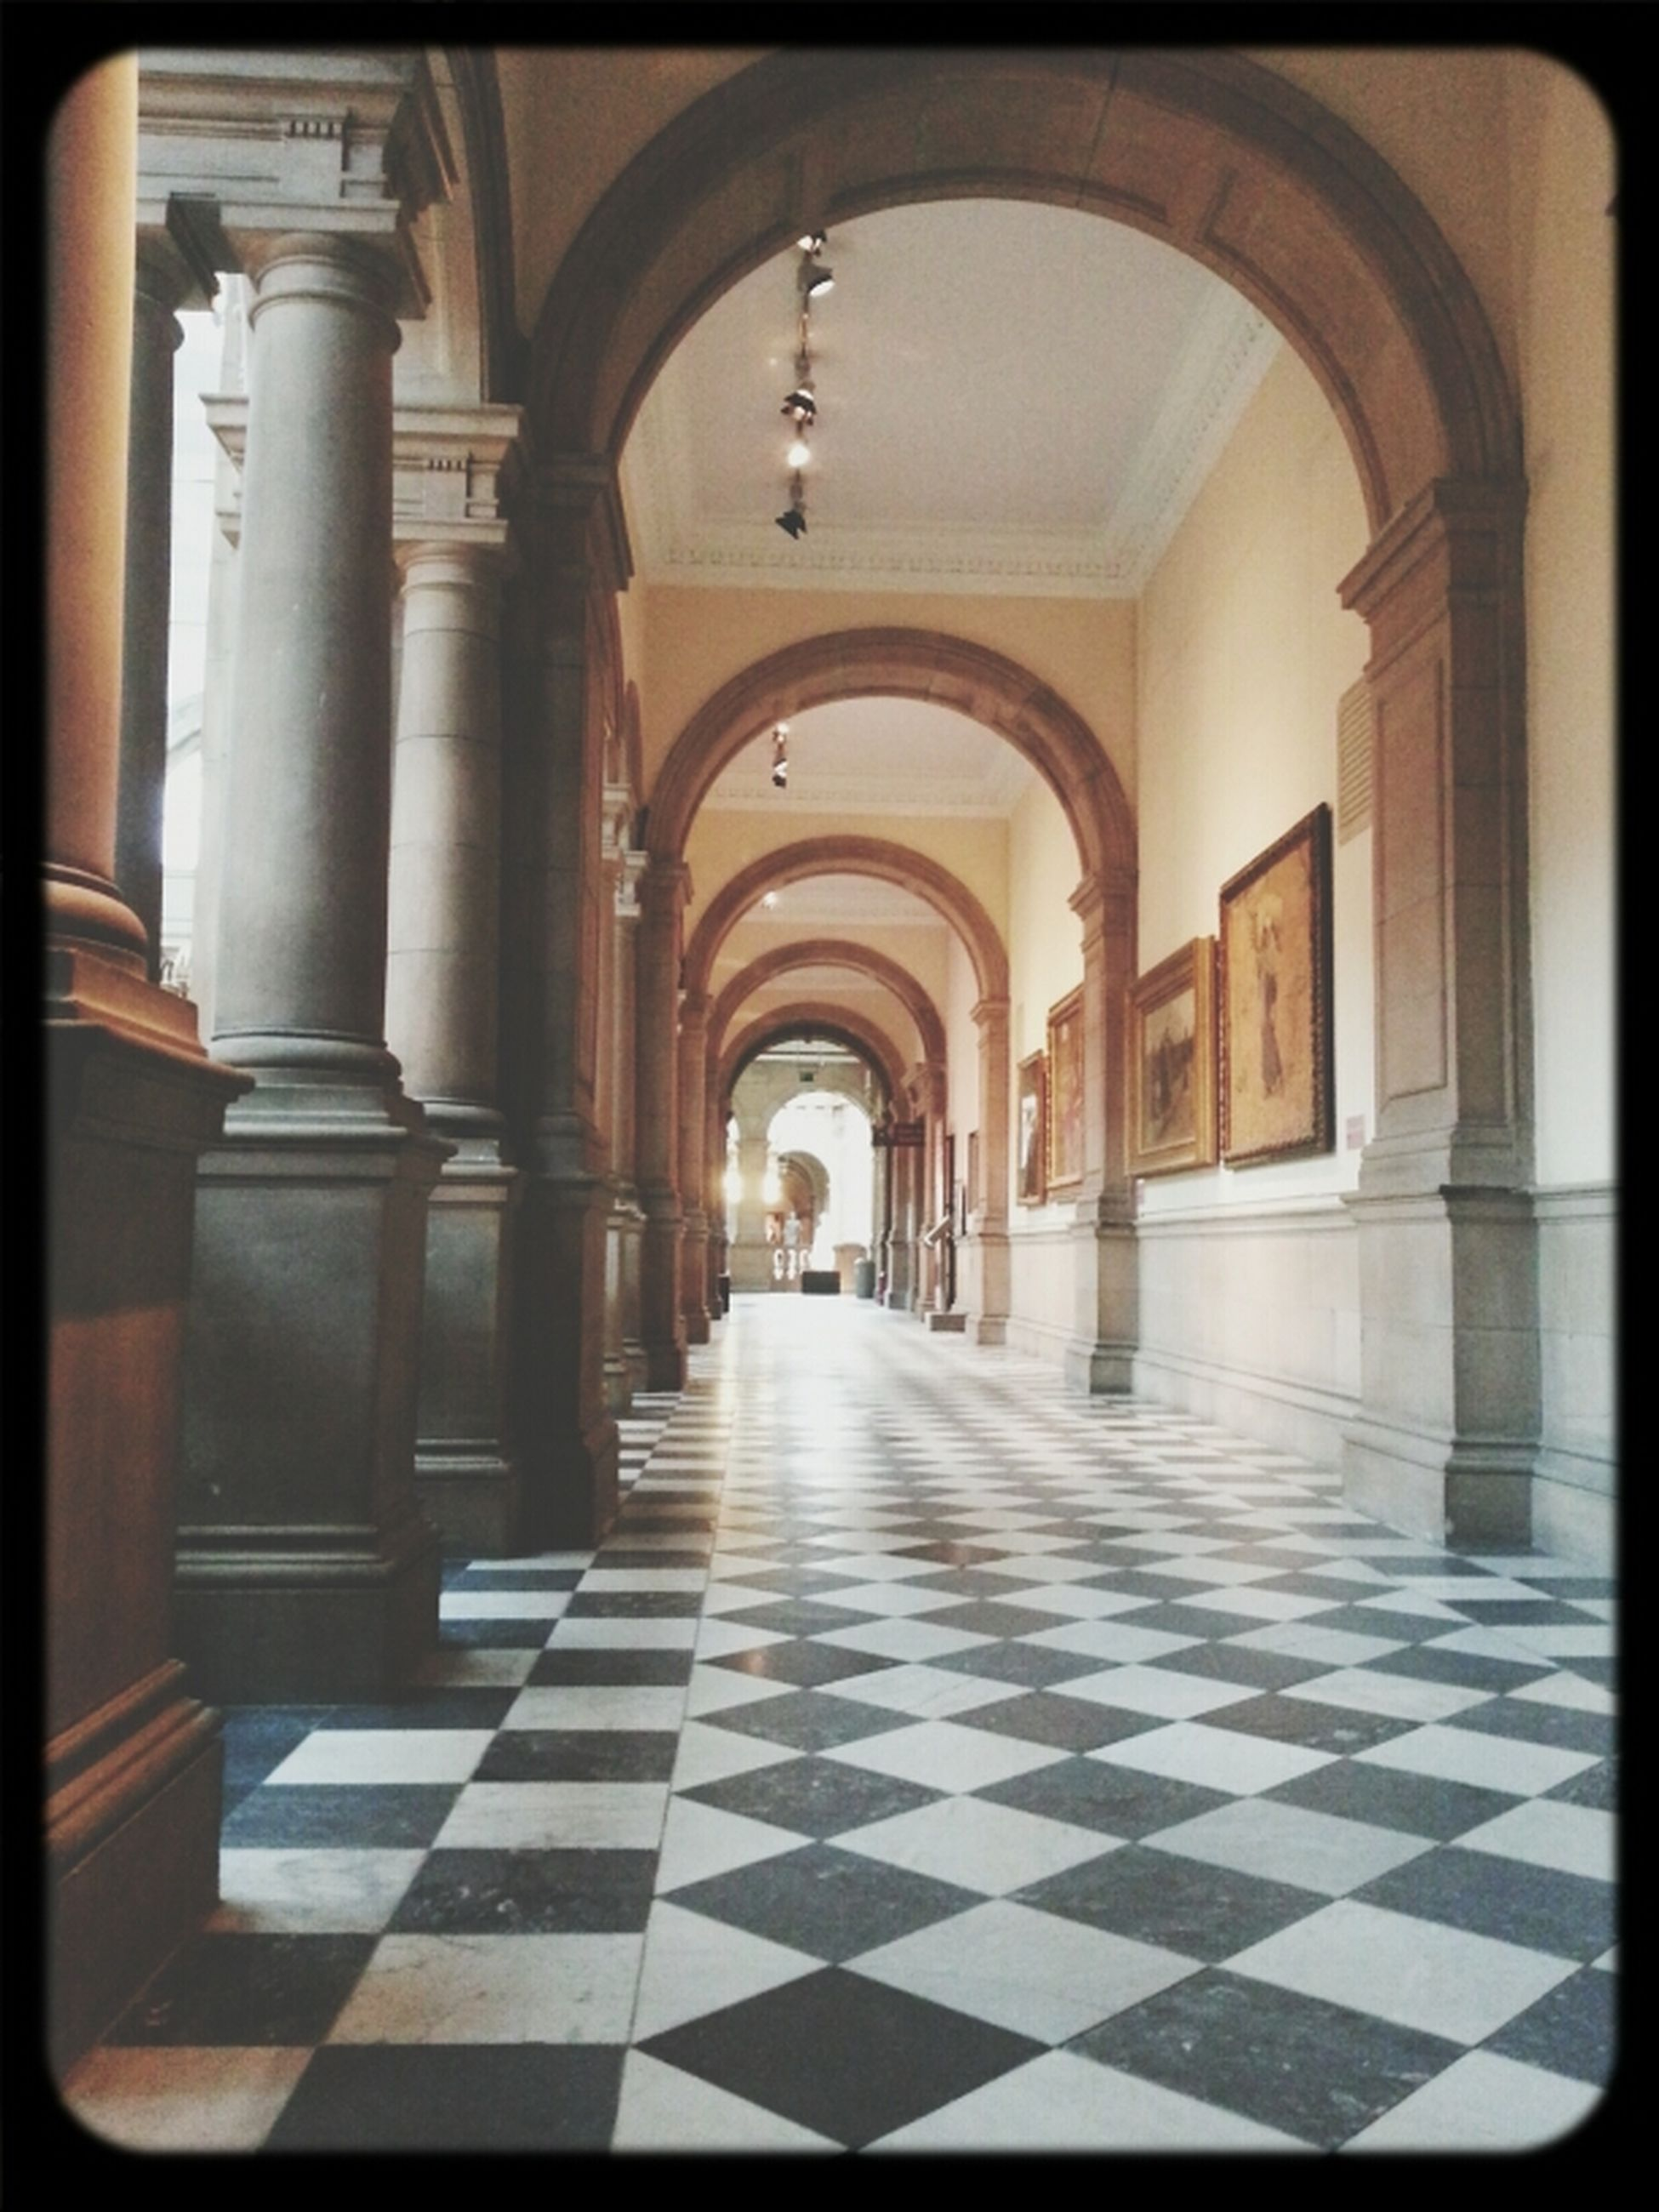 indoors, corridor, arch, architecture, the way forward, built structure, diminishing perspective, empty, flooring, tiled floor, architectural column, ceiling, in a row, column, colonnade, absence, interior, vanishing point, history, walkway